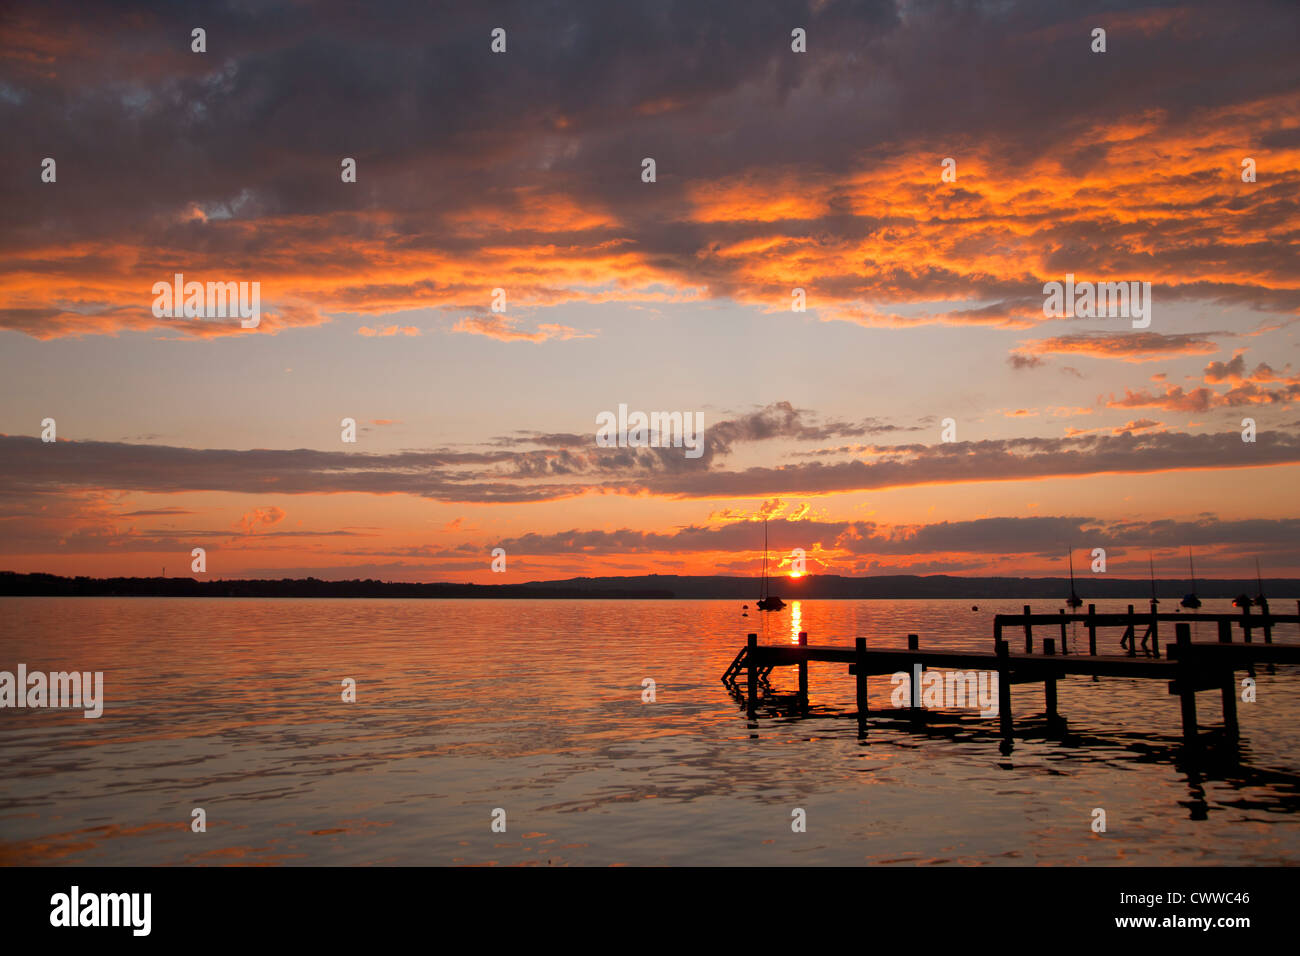 Sun setting over still rural lake Stock Photo